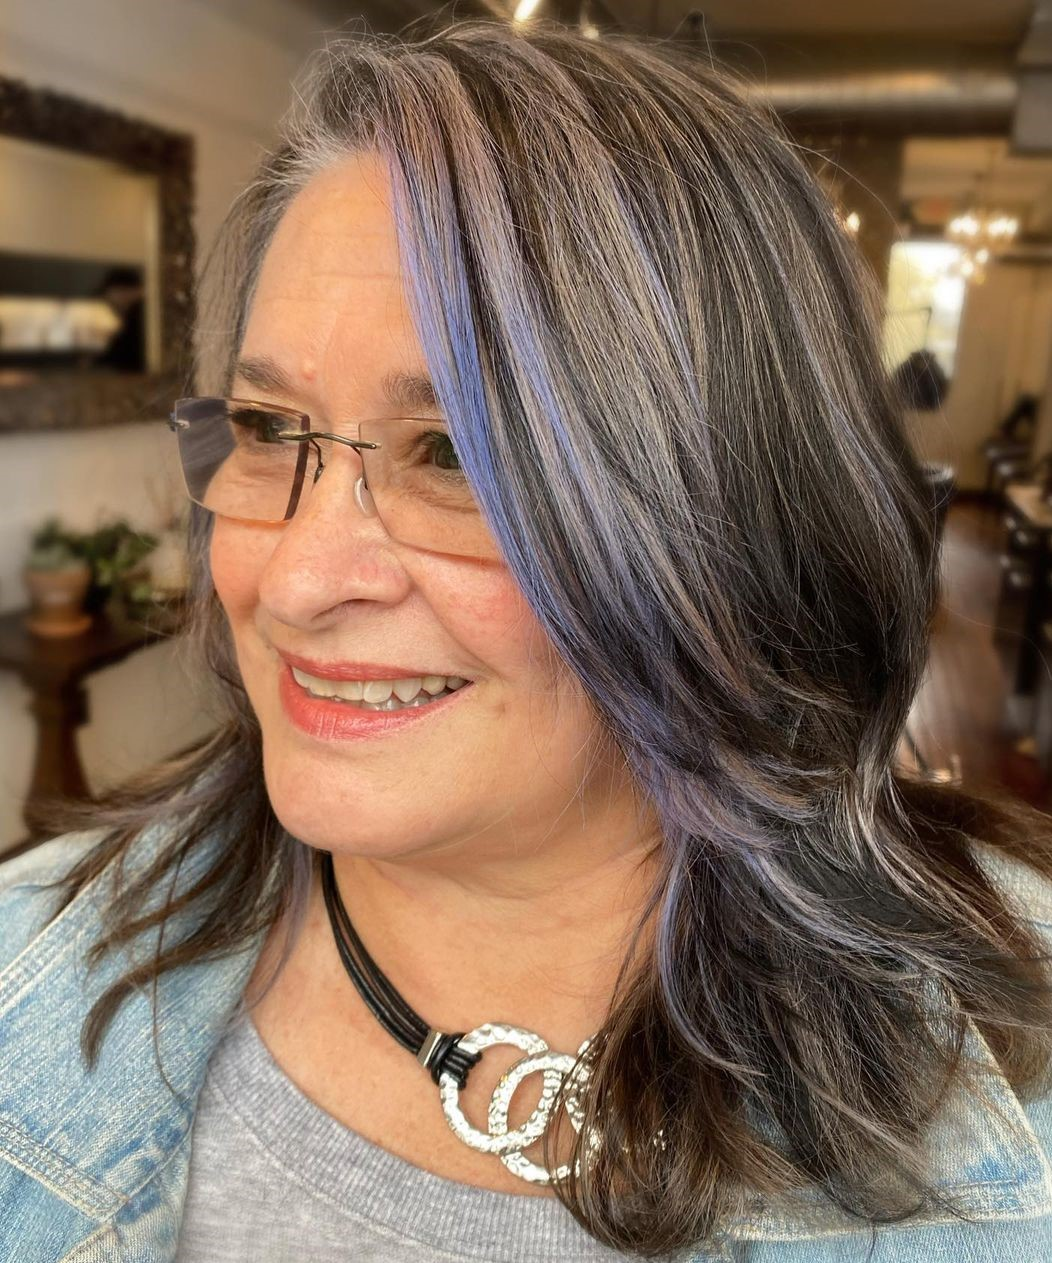 Over 50 Midi Gray Hairstyle with Glasses